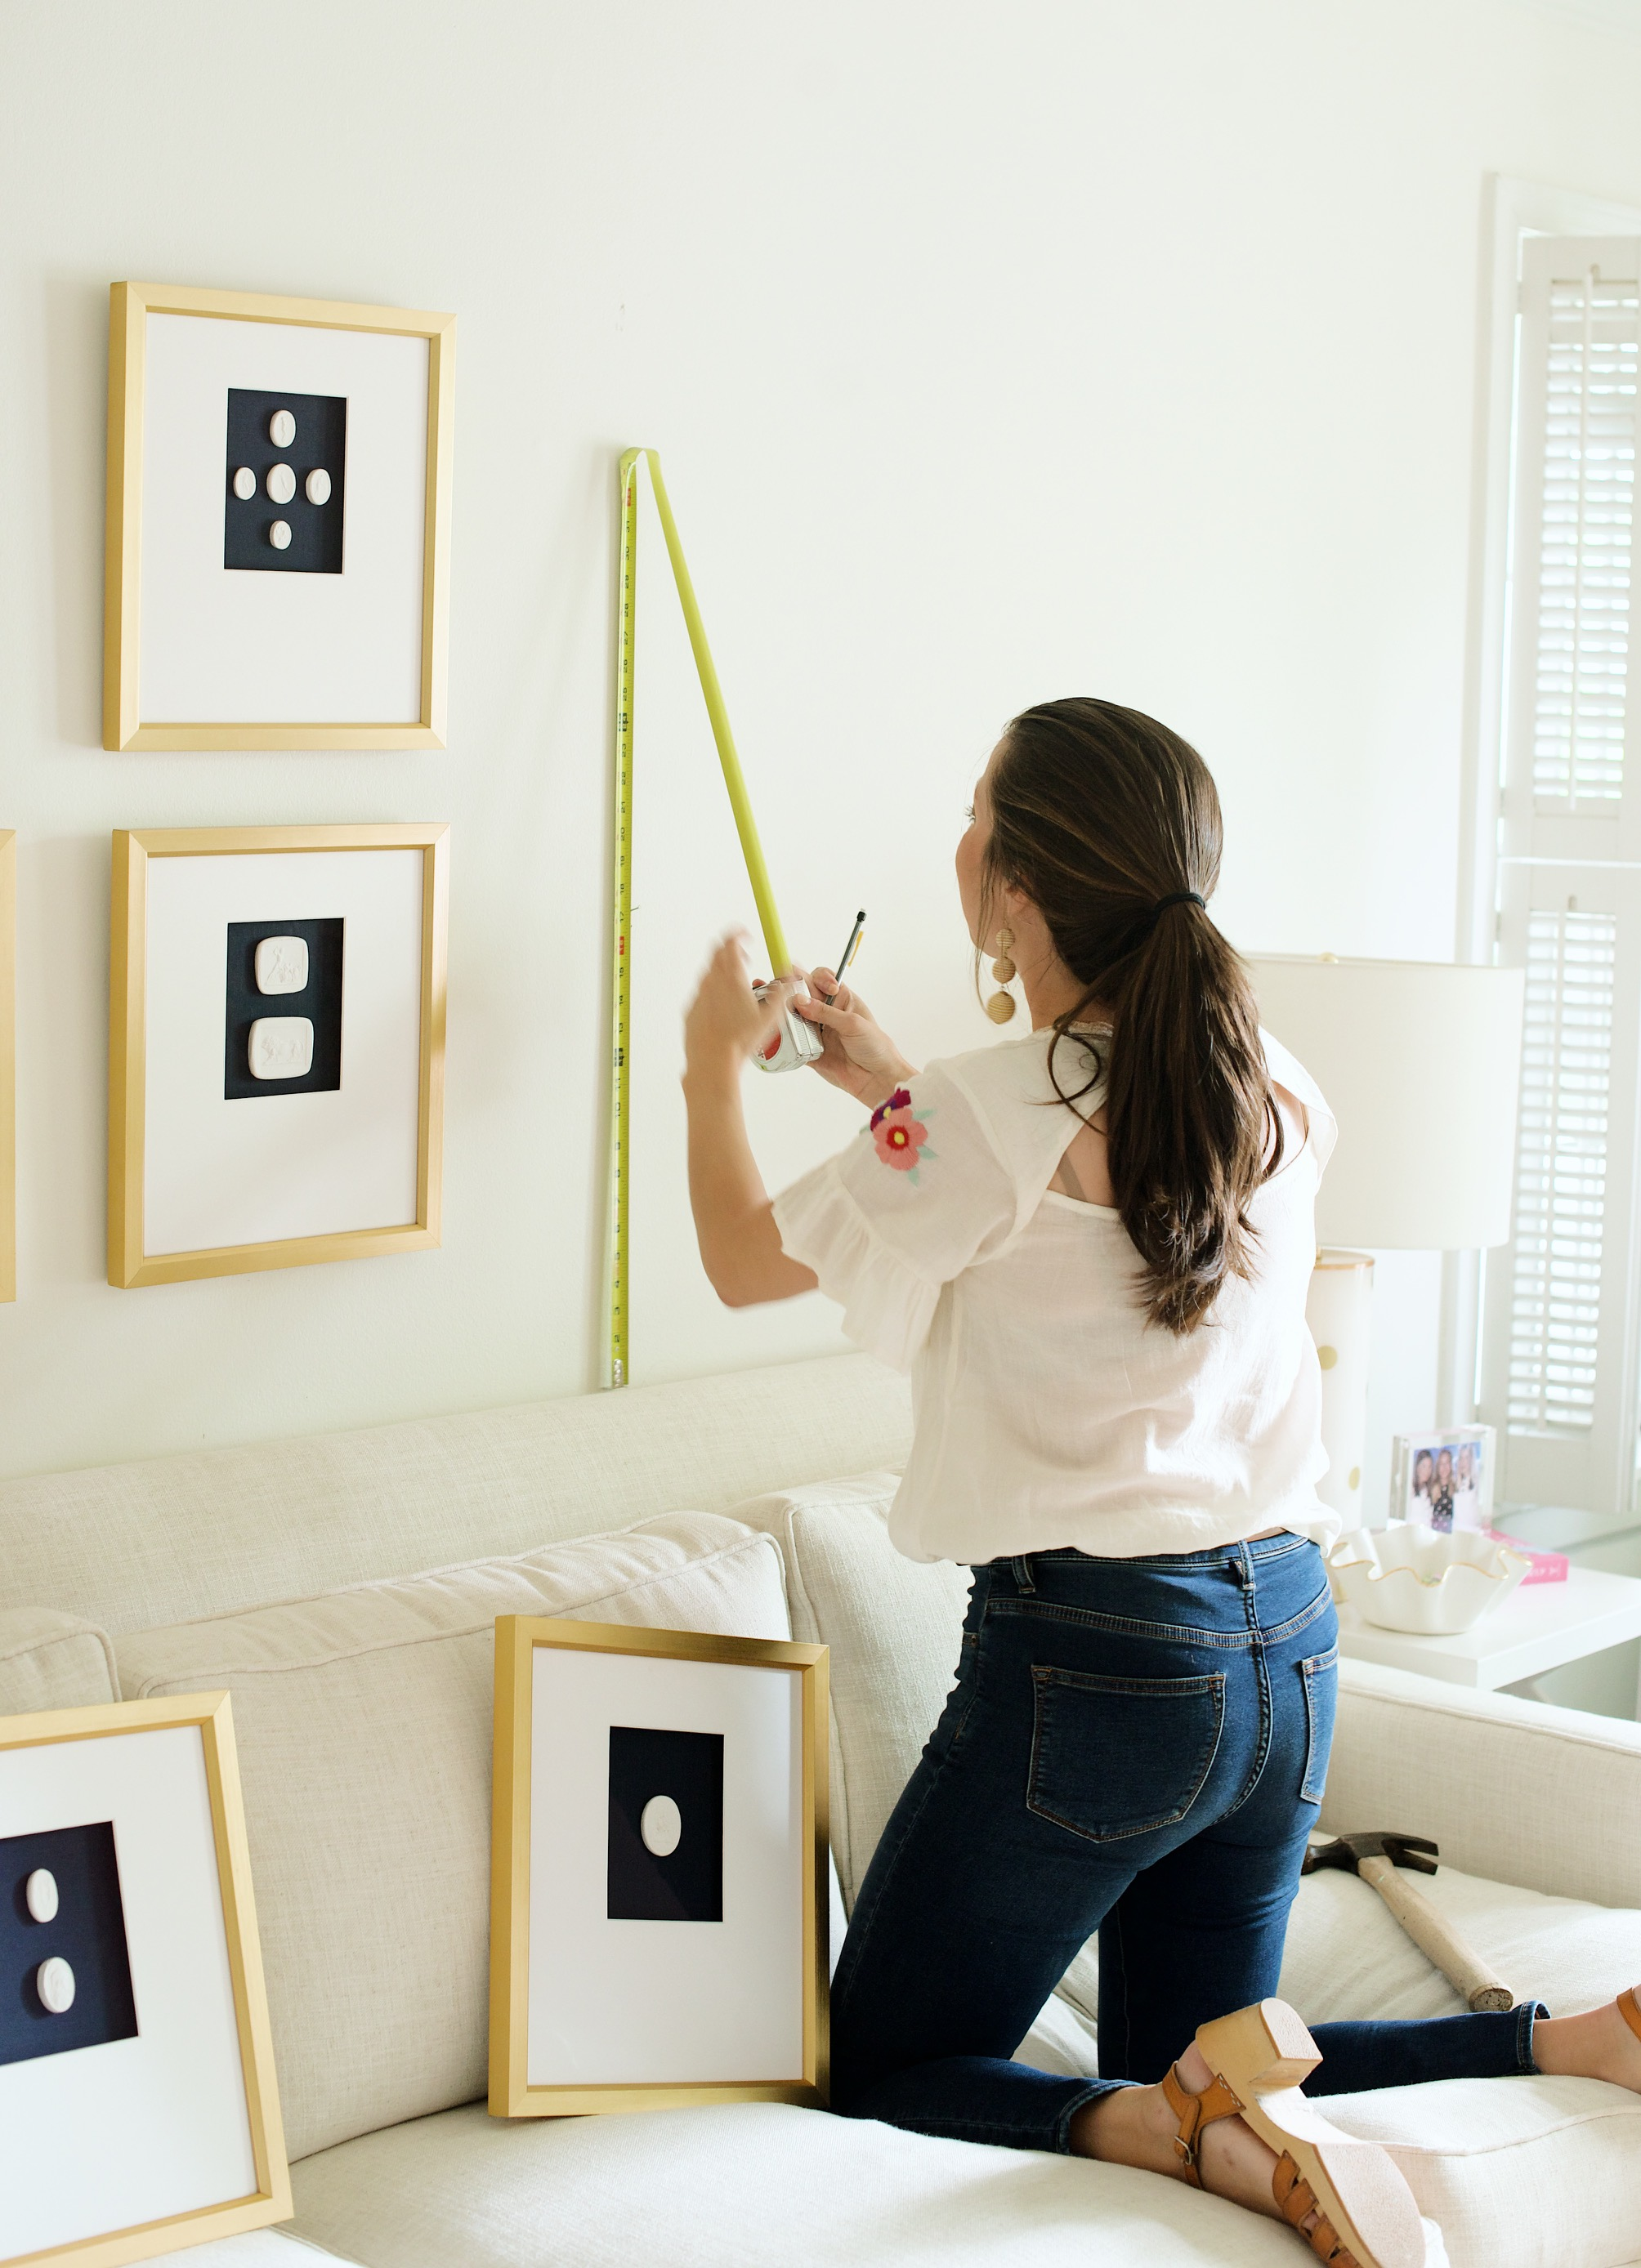 How To Hang A Gallery Wall 101 | Sarah Catherine Design